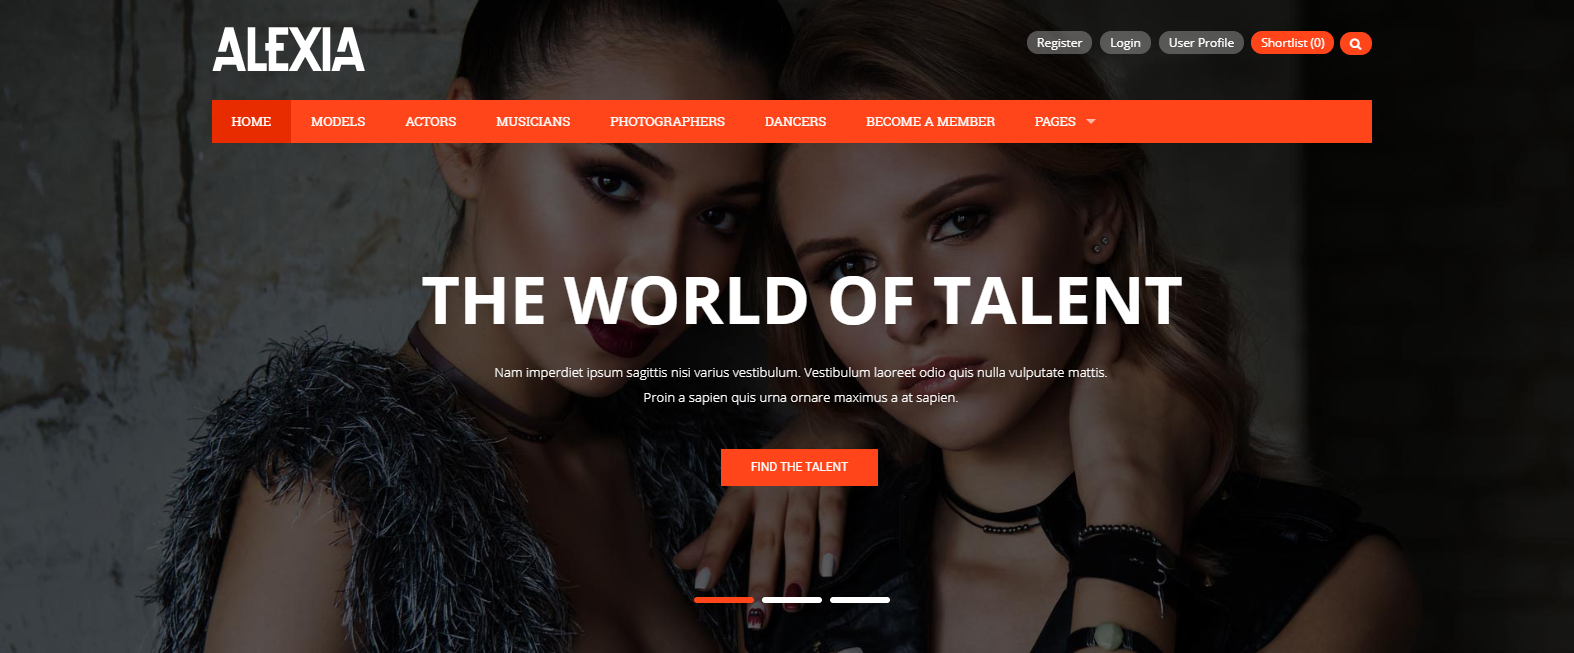 Alexia - Model Agency WordPress Theme